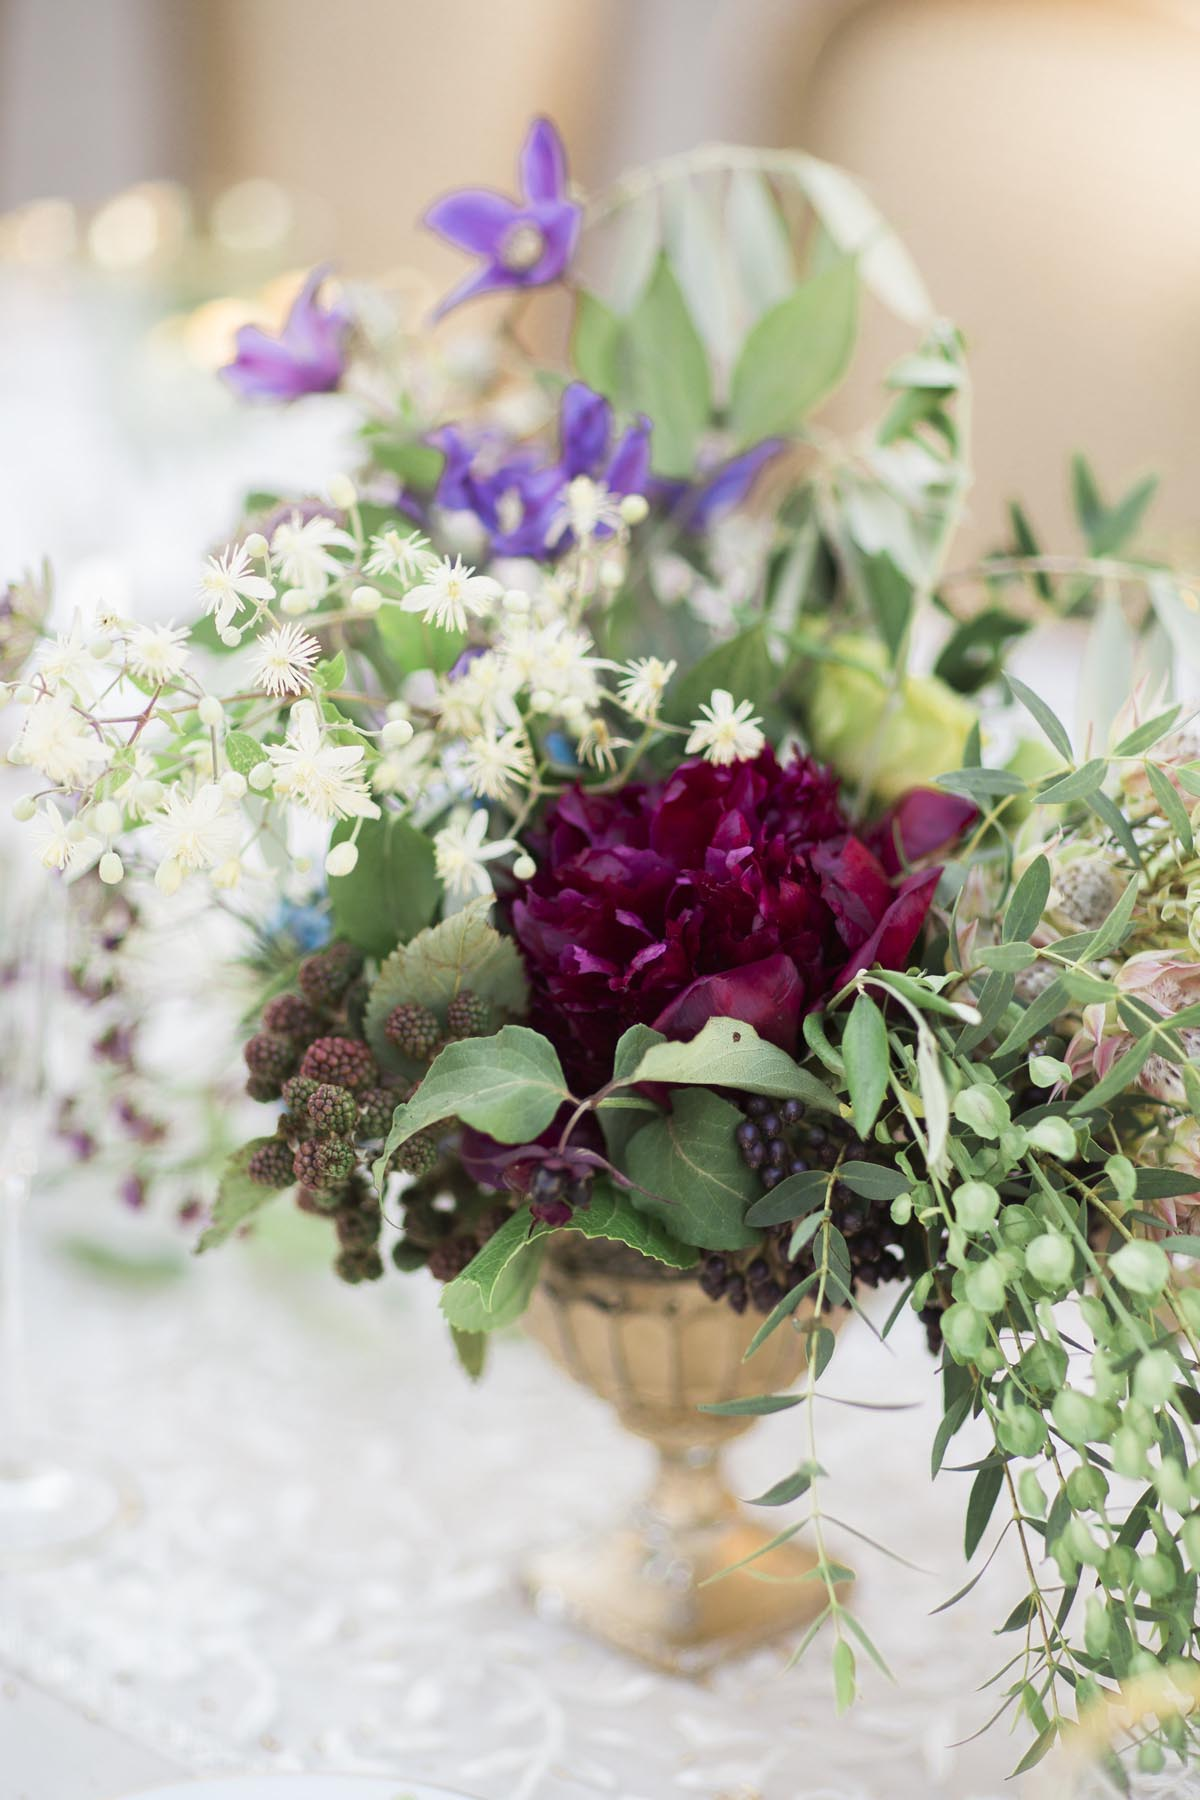 burgundy-peonies-lace-runner-gold-vase-Tuscany-wedding-centerpiece